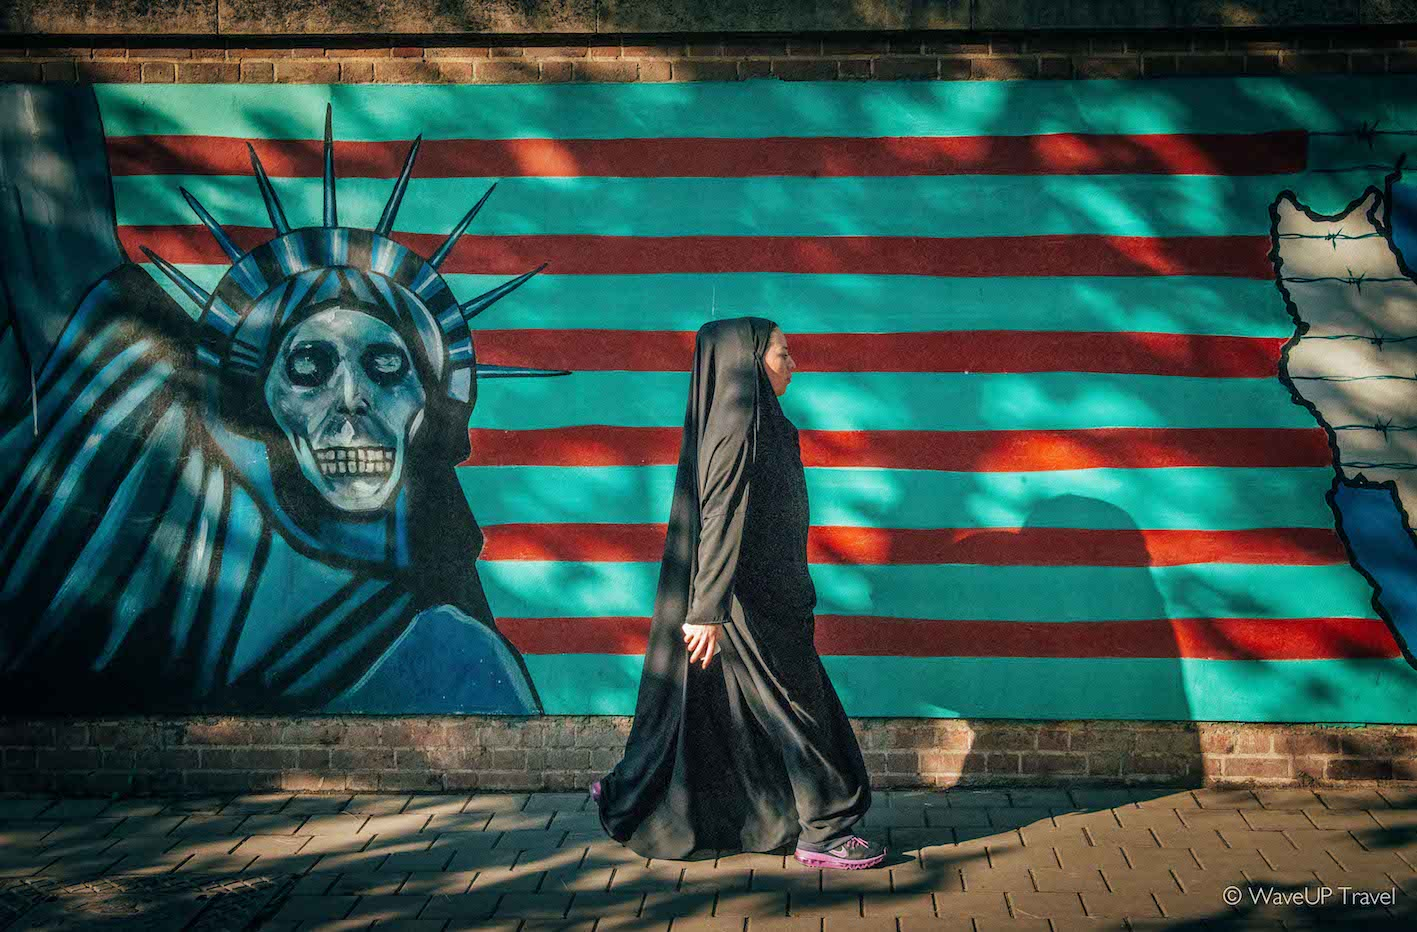 Iran tour: top-10 places to see - US Den of Espionage